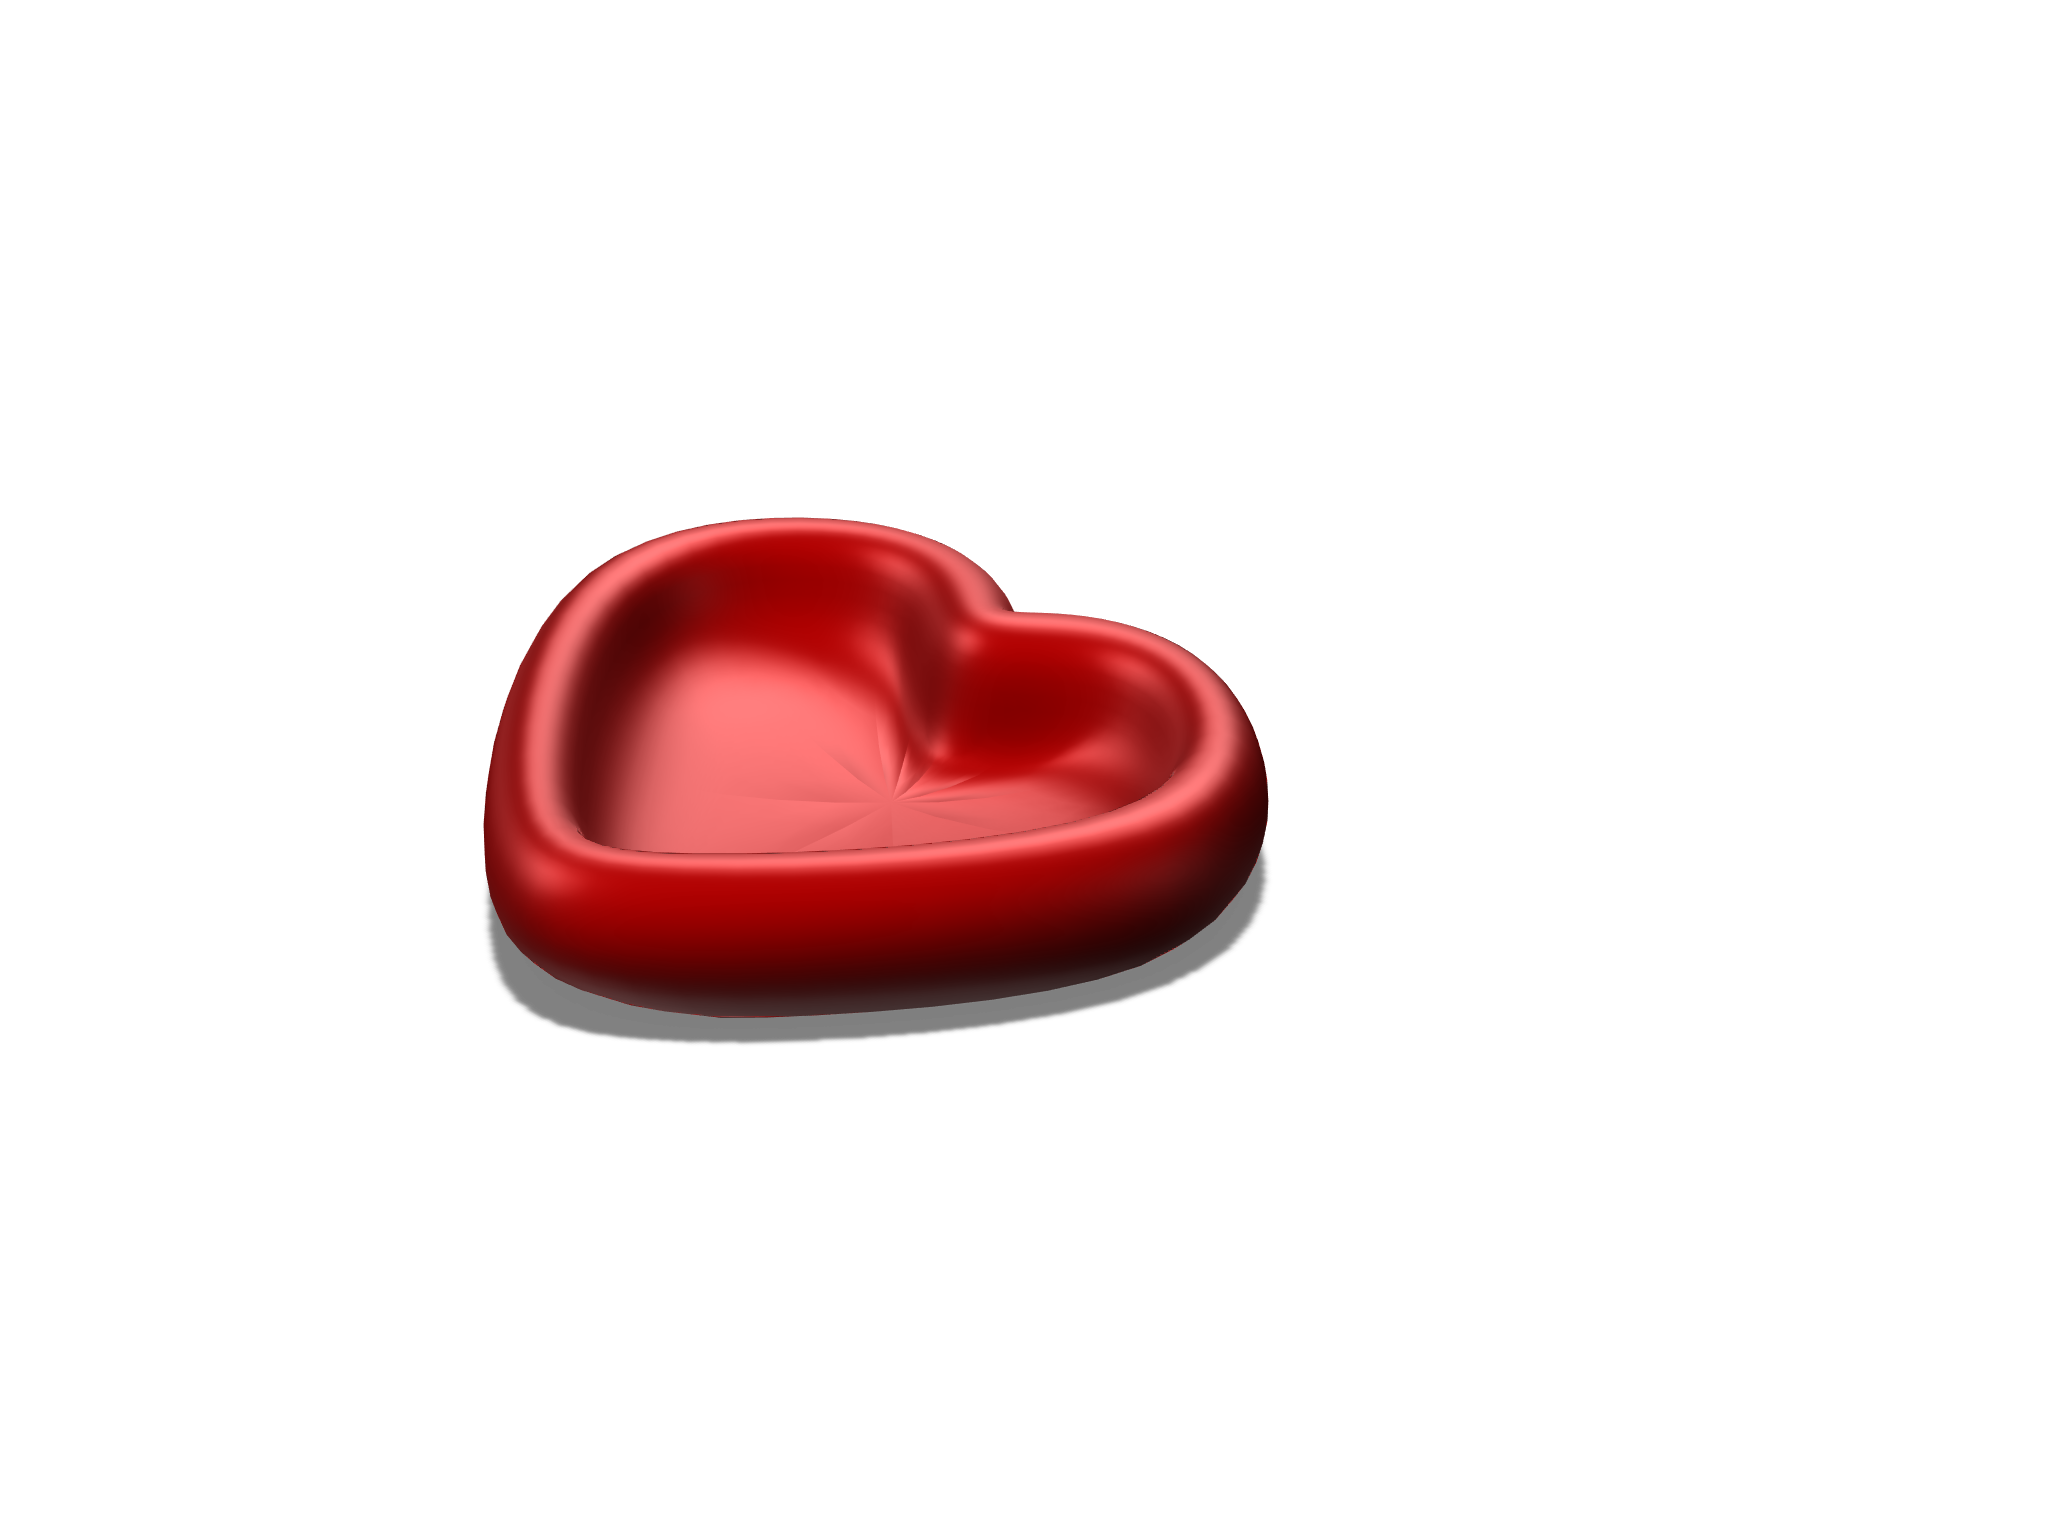 Heart Bowl - 3D design by deluca.jiim Apr 26, 2018